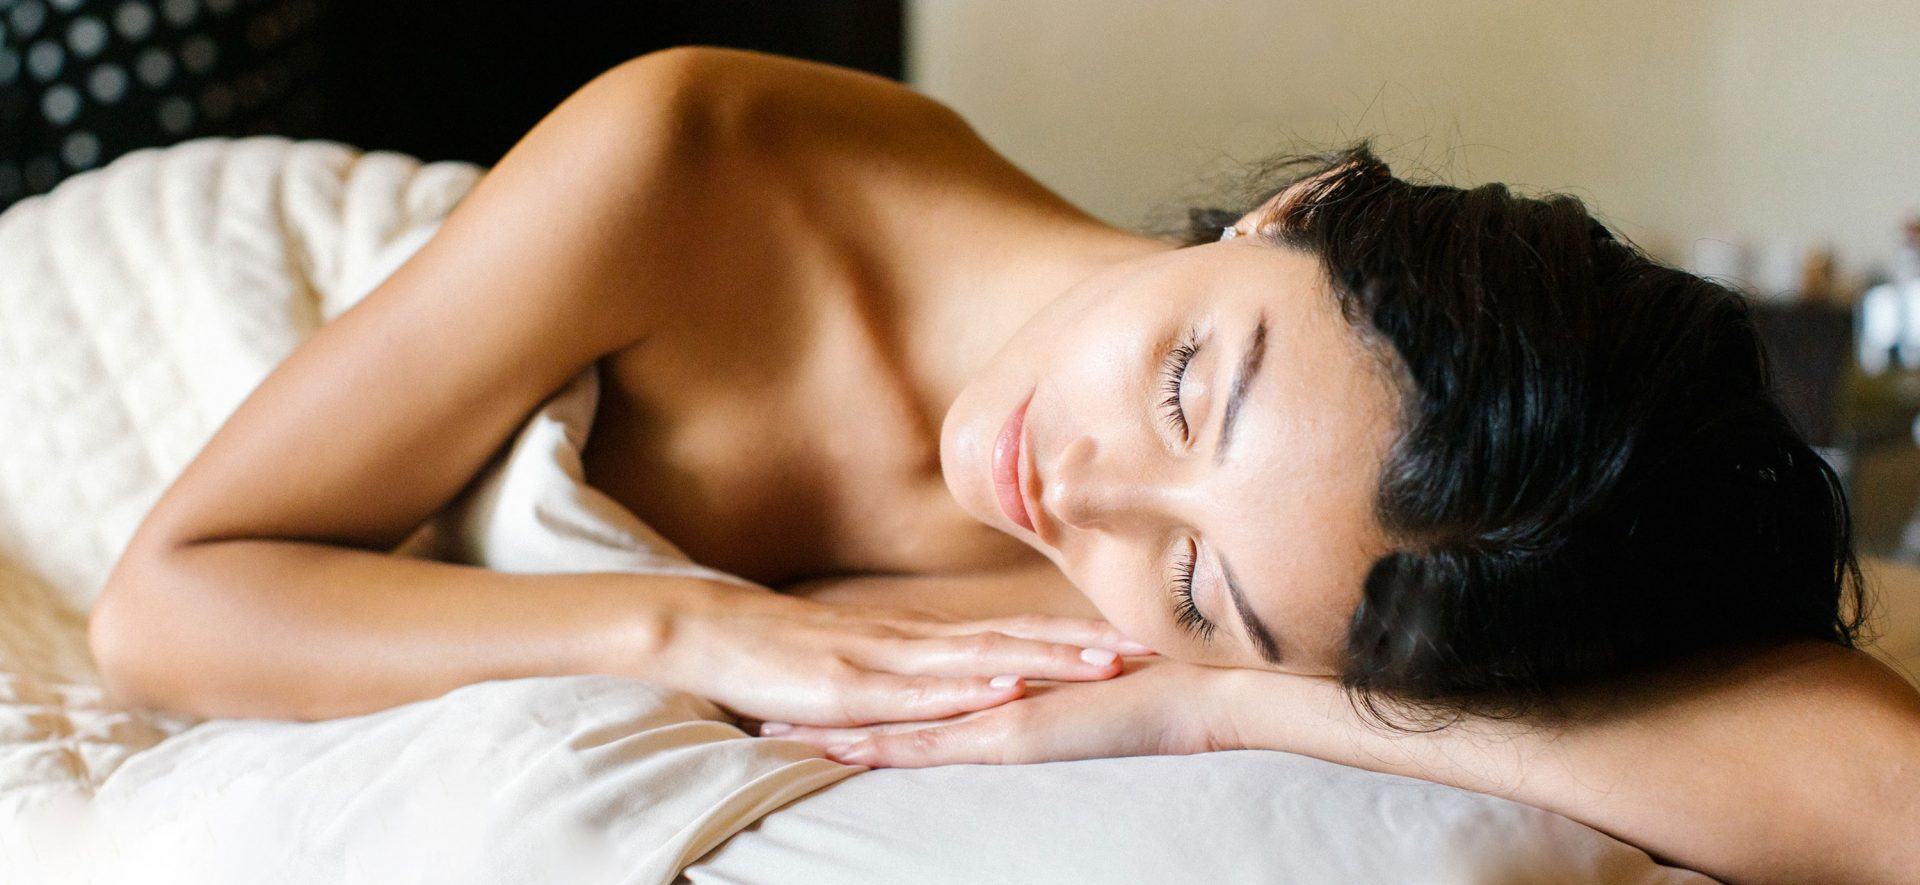 Transformative wellness treatments at Acqualina Spa by ESPA in South Florida.